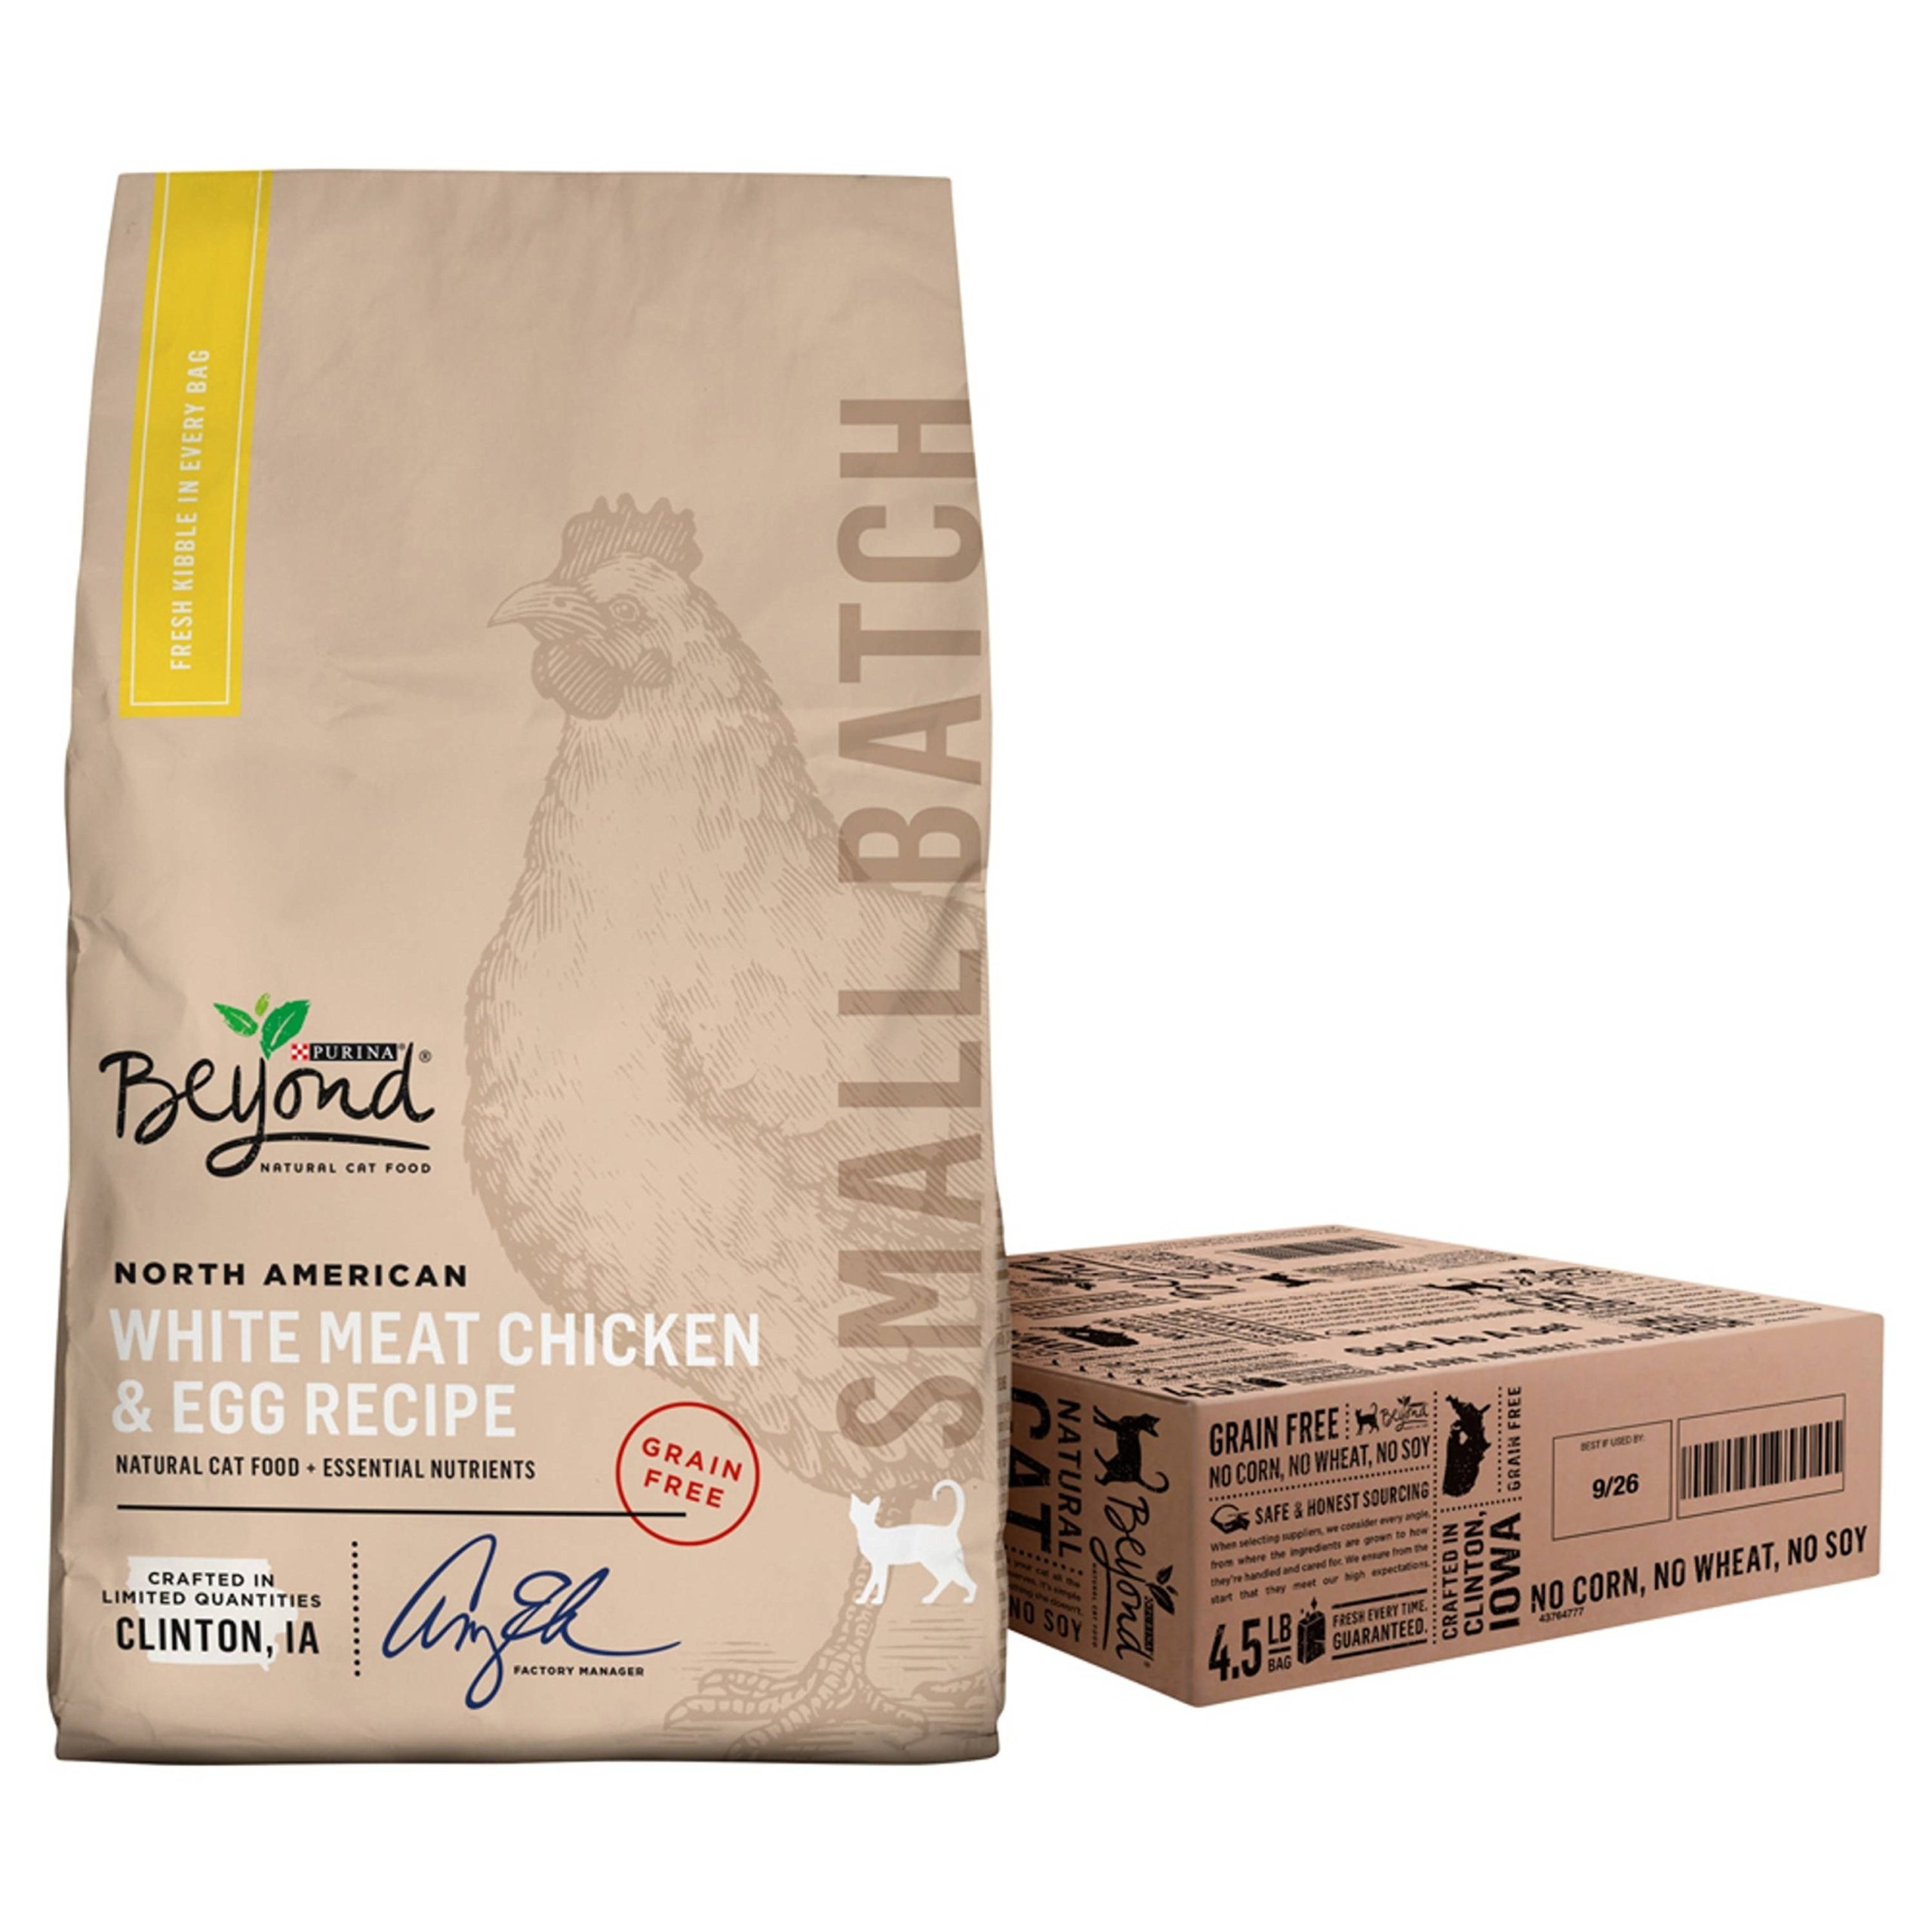 Purina Beyond Small Batch Grain-free North American White Meat Chicken & Egg Dry Cat Food - 4.5 lb. Bag by Purina Beyond (Image #3)